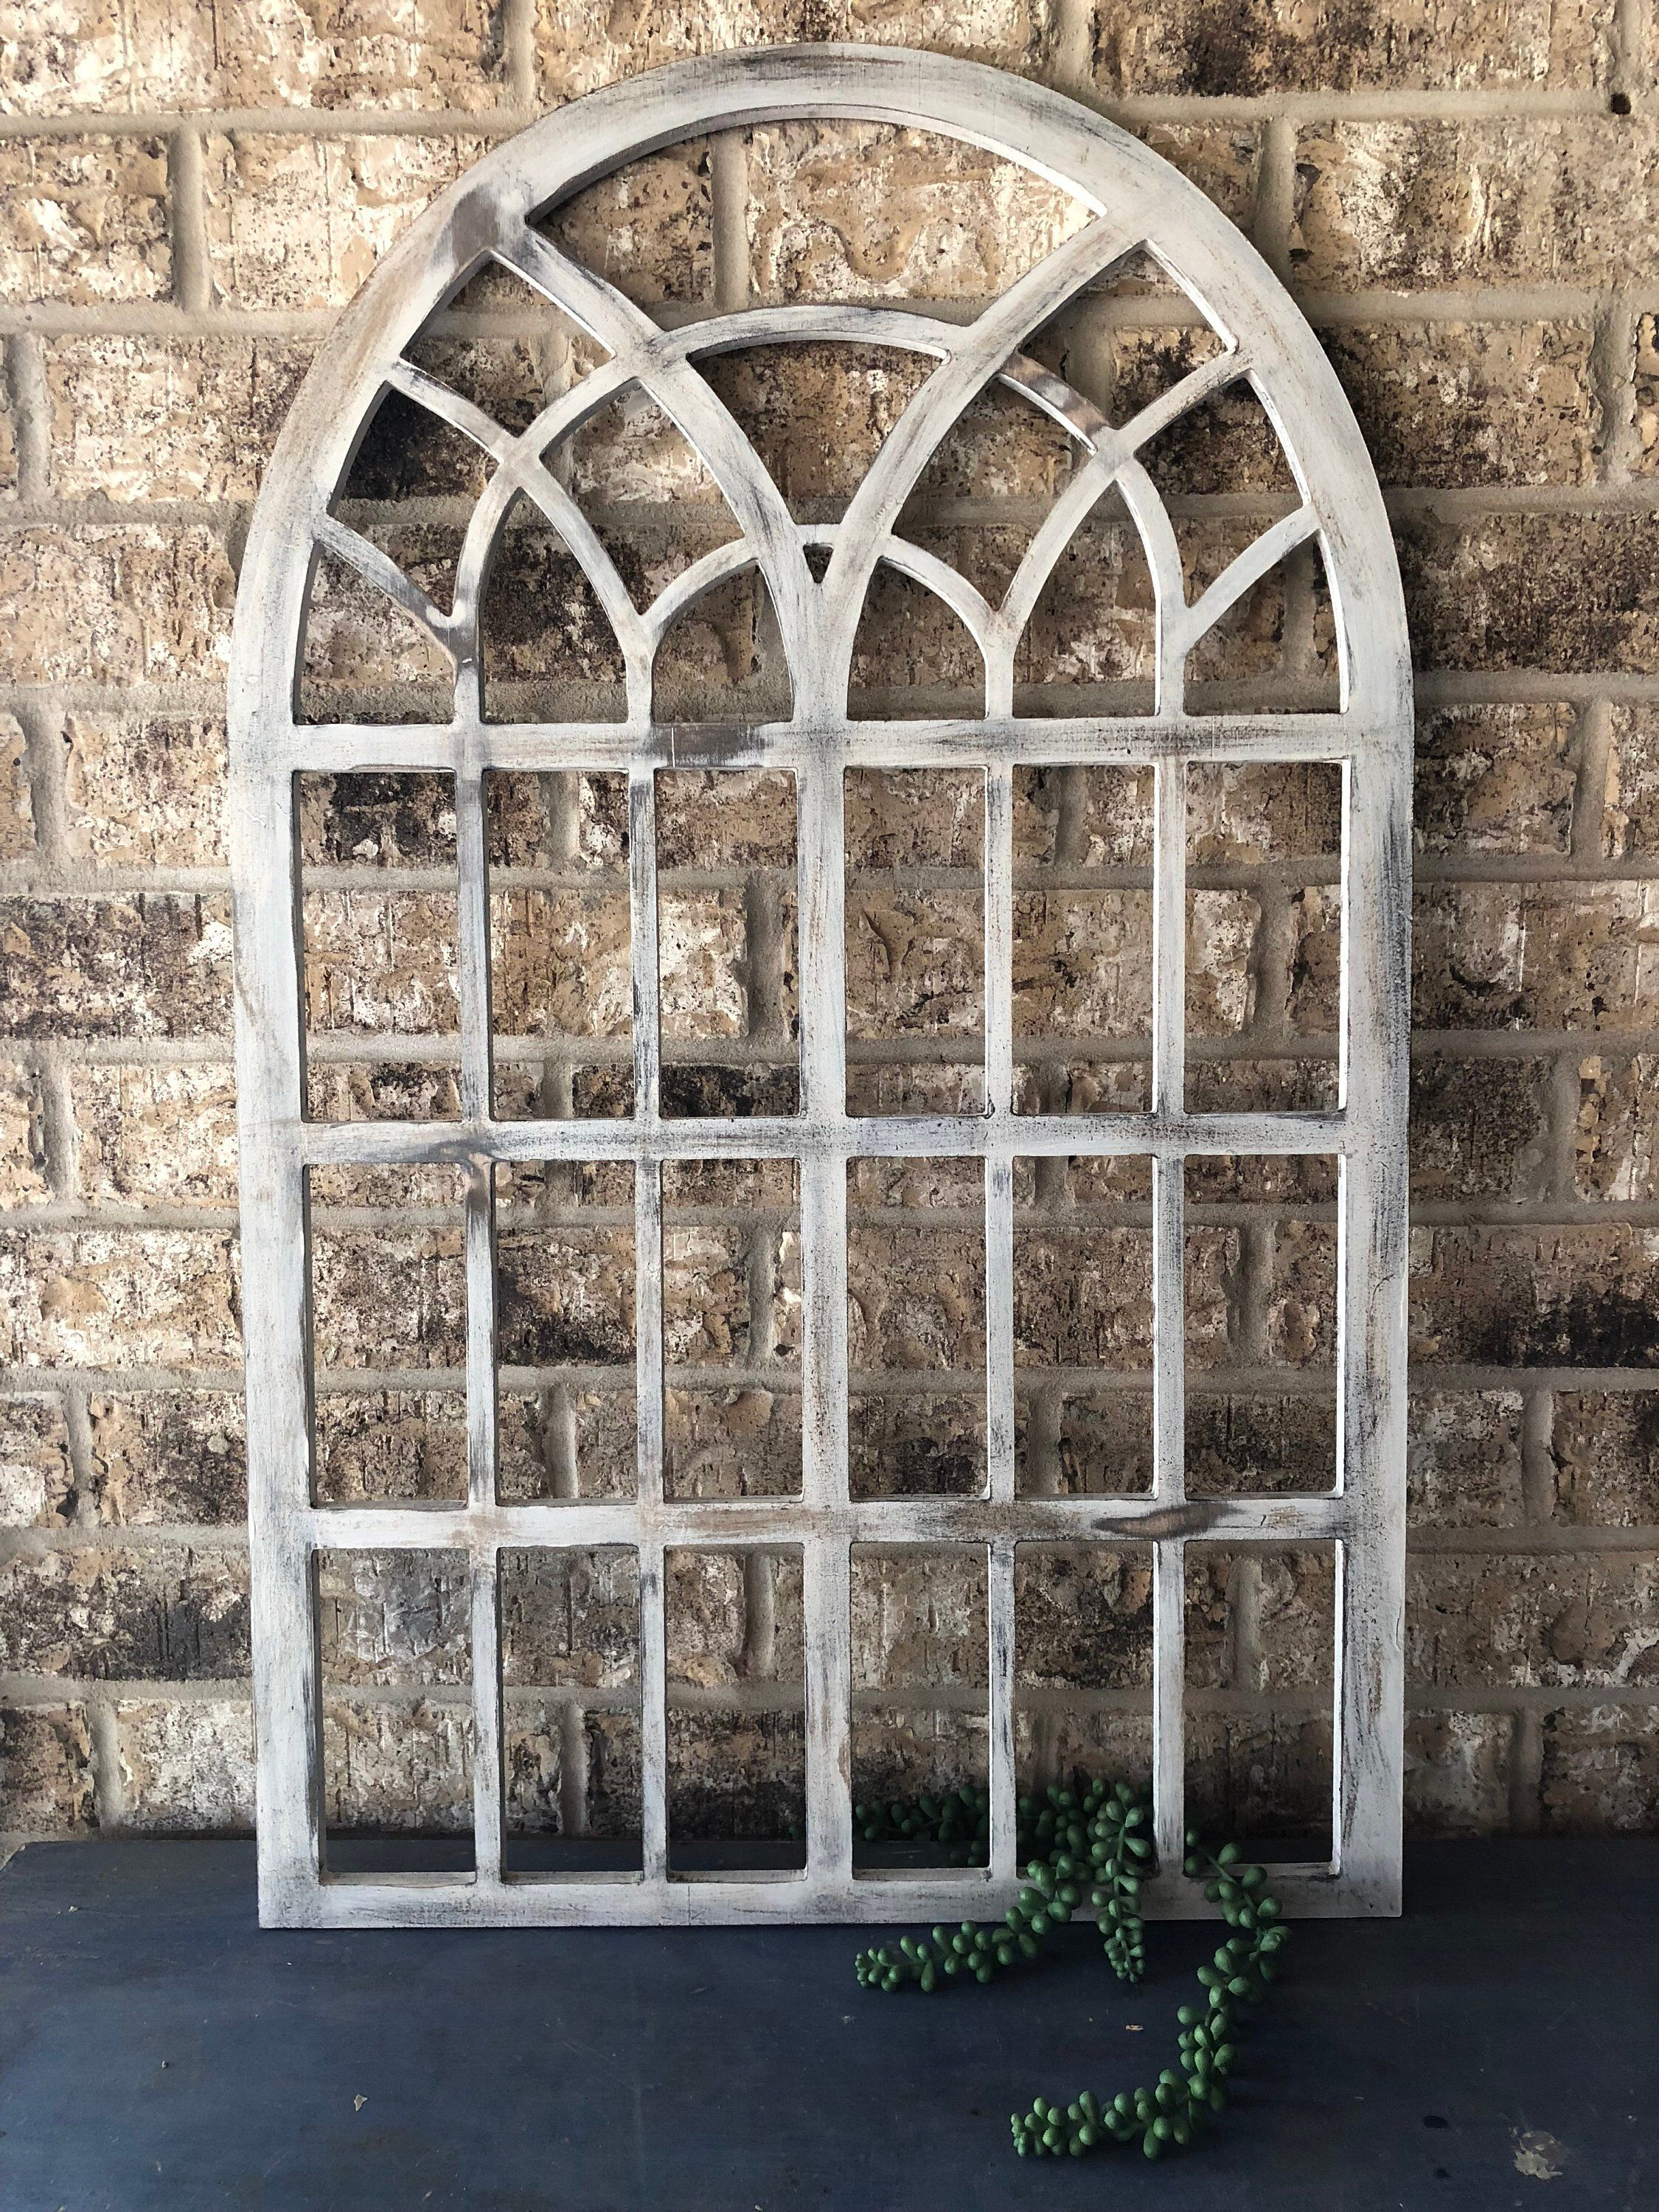 Farmhouse Cathedral Arched Window Frame Church Wood Window Decor Distressed White Window Frame By Rustic Window Wall Decor Arched Windows Farmhouse Decor